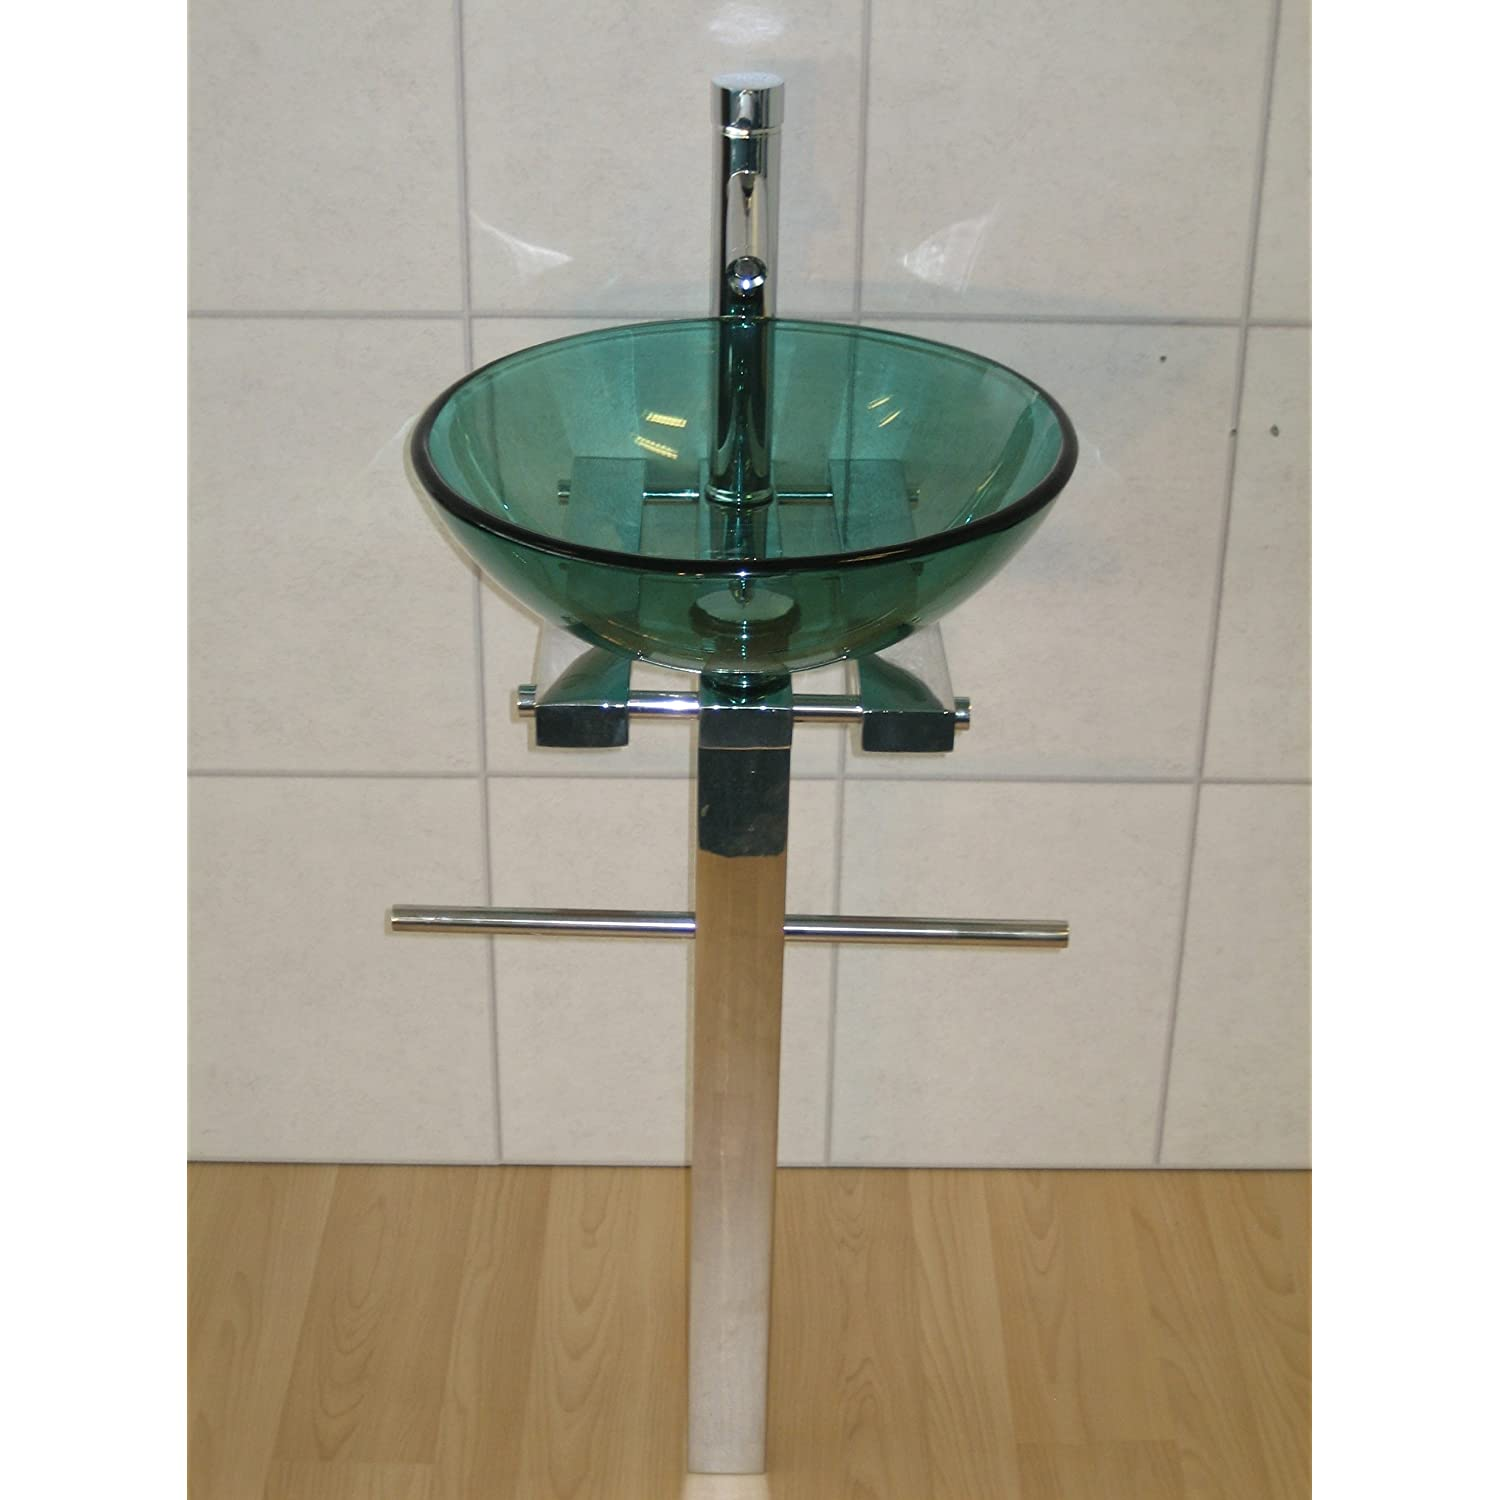 Round Pedestal Sink : ... Bathroom Sink Round Green Glass Wash Basin Pedestal Tap Trap Waste